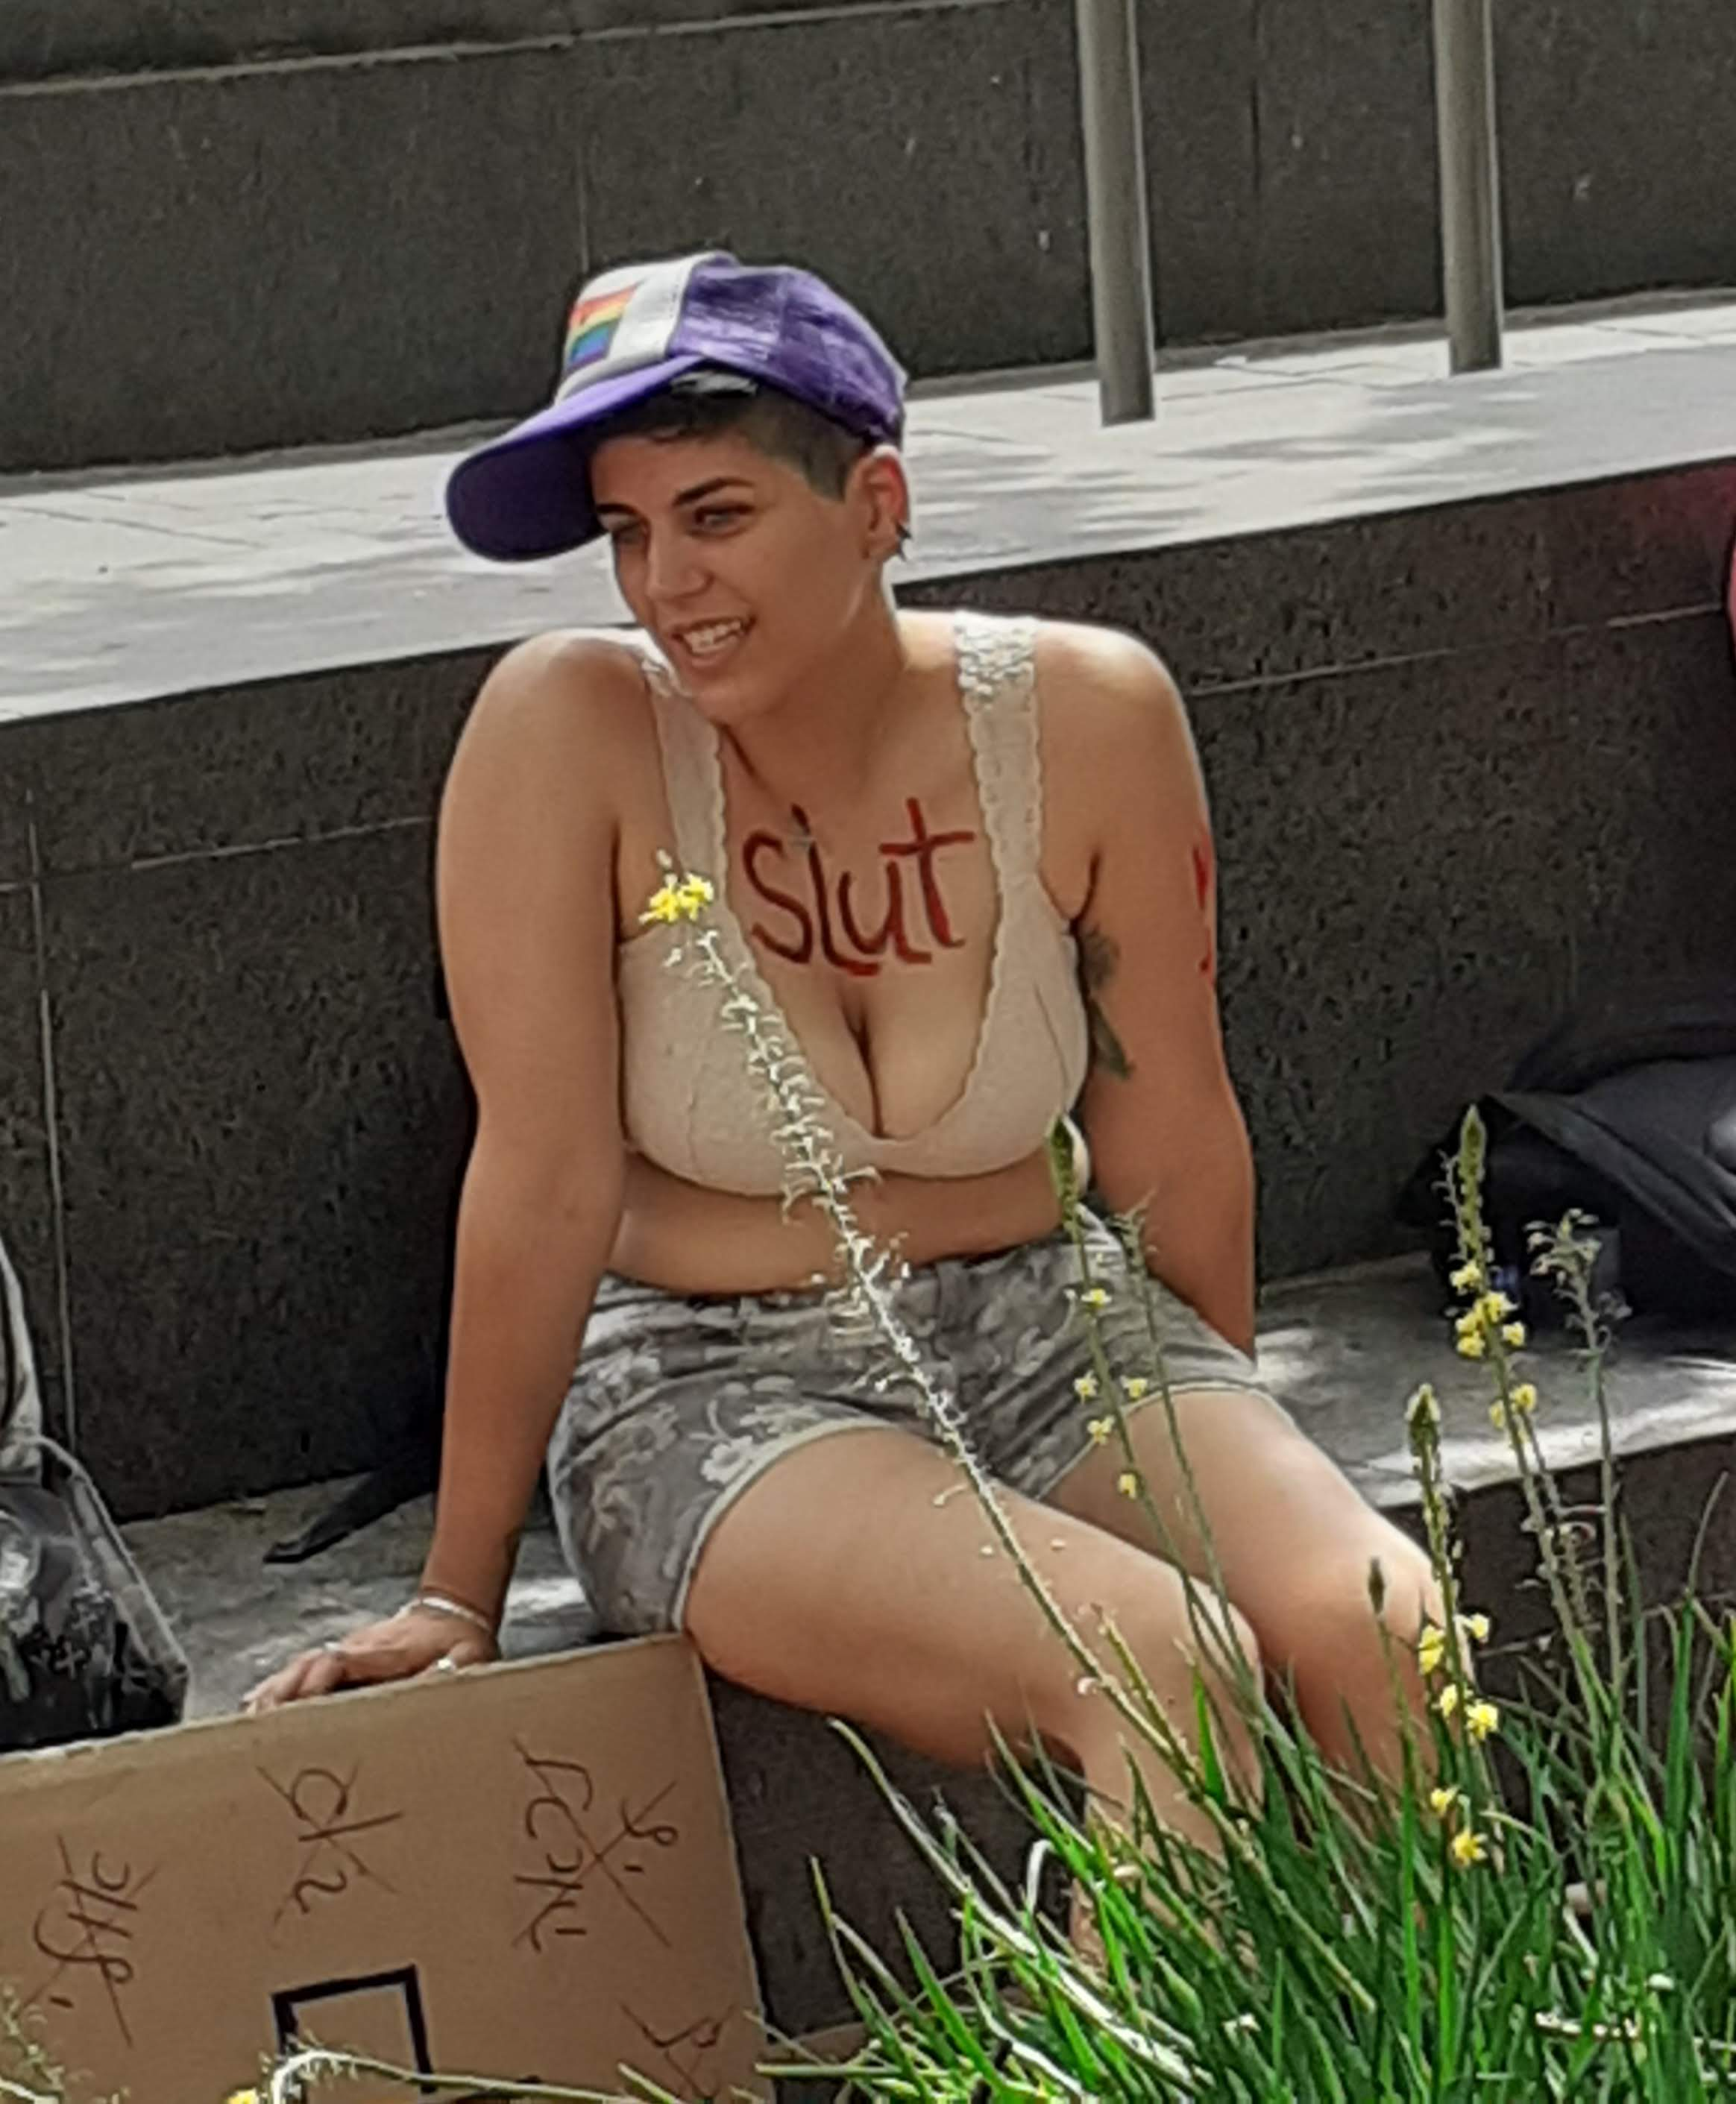 A woman attending the Slutwalk march in May. Some women removed their shirts in protest of religious leaders and victim-blaming women who come forward with sexual abuse and rape allegations. Photo by Gil Zohar.